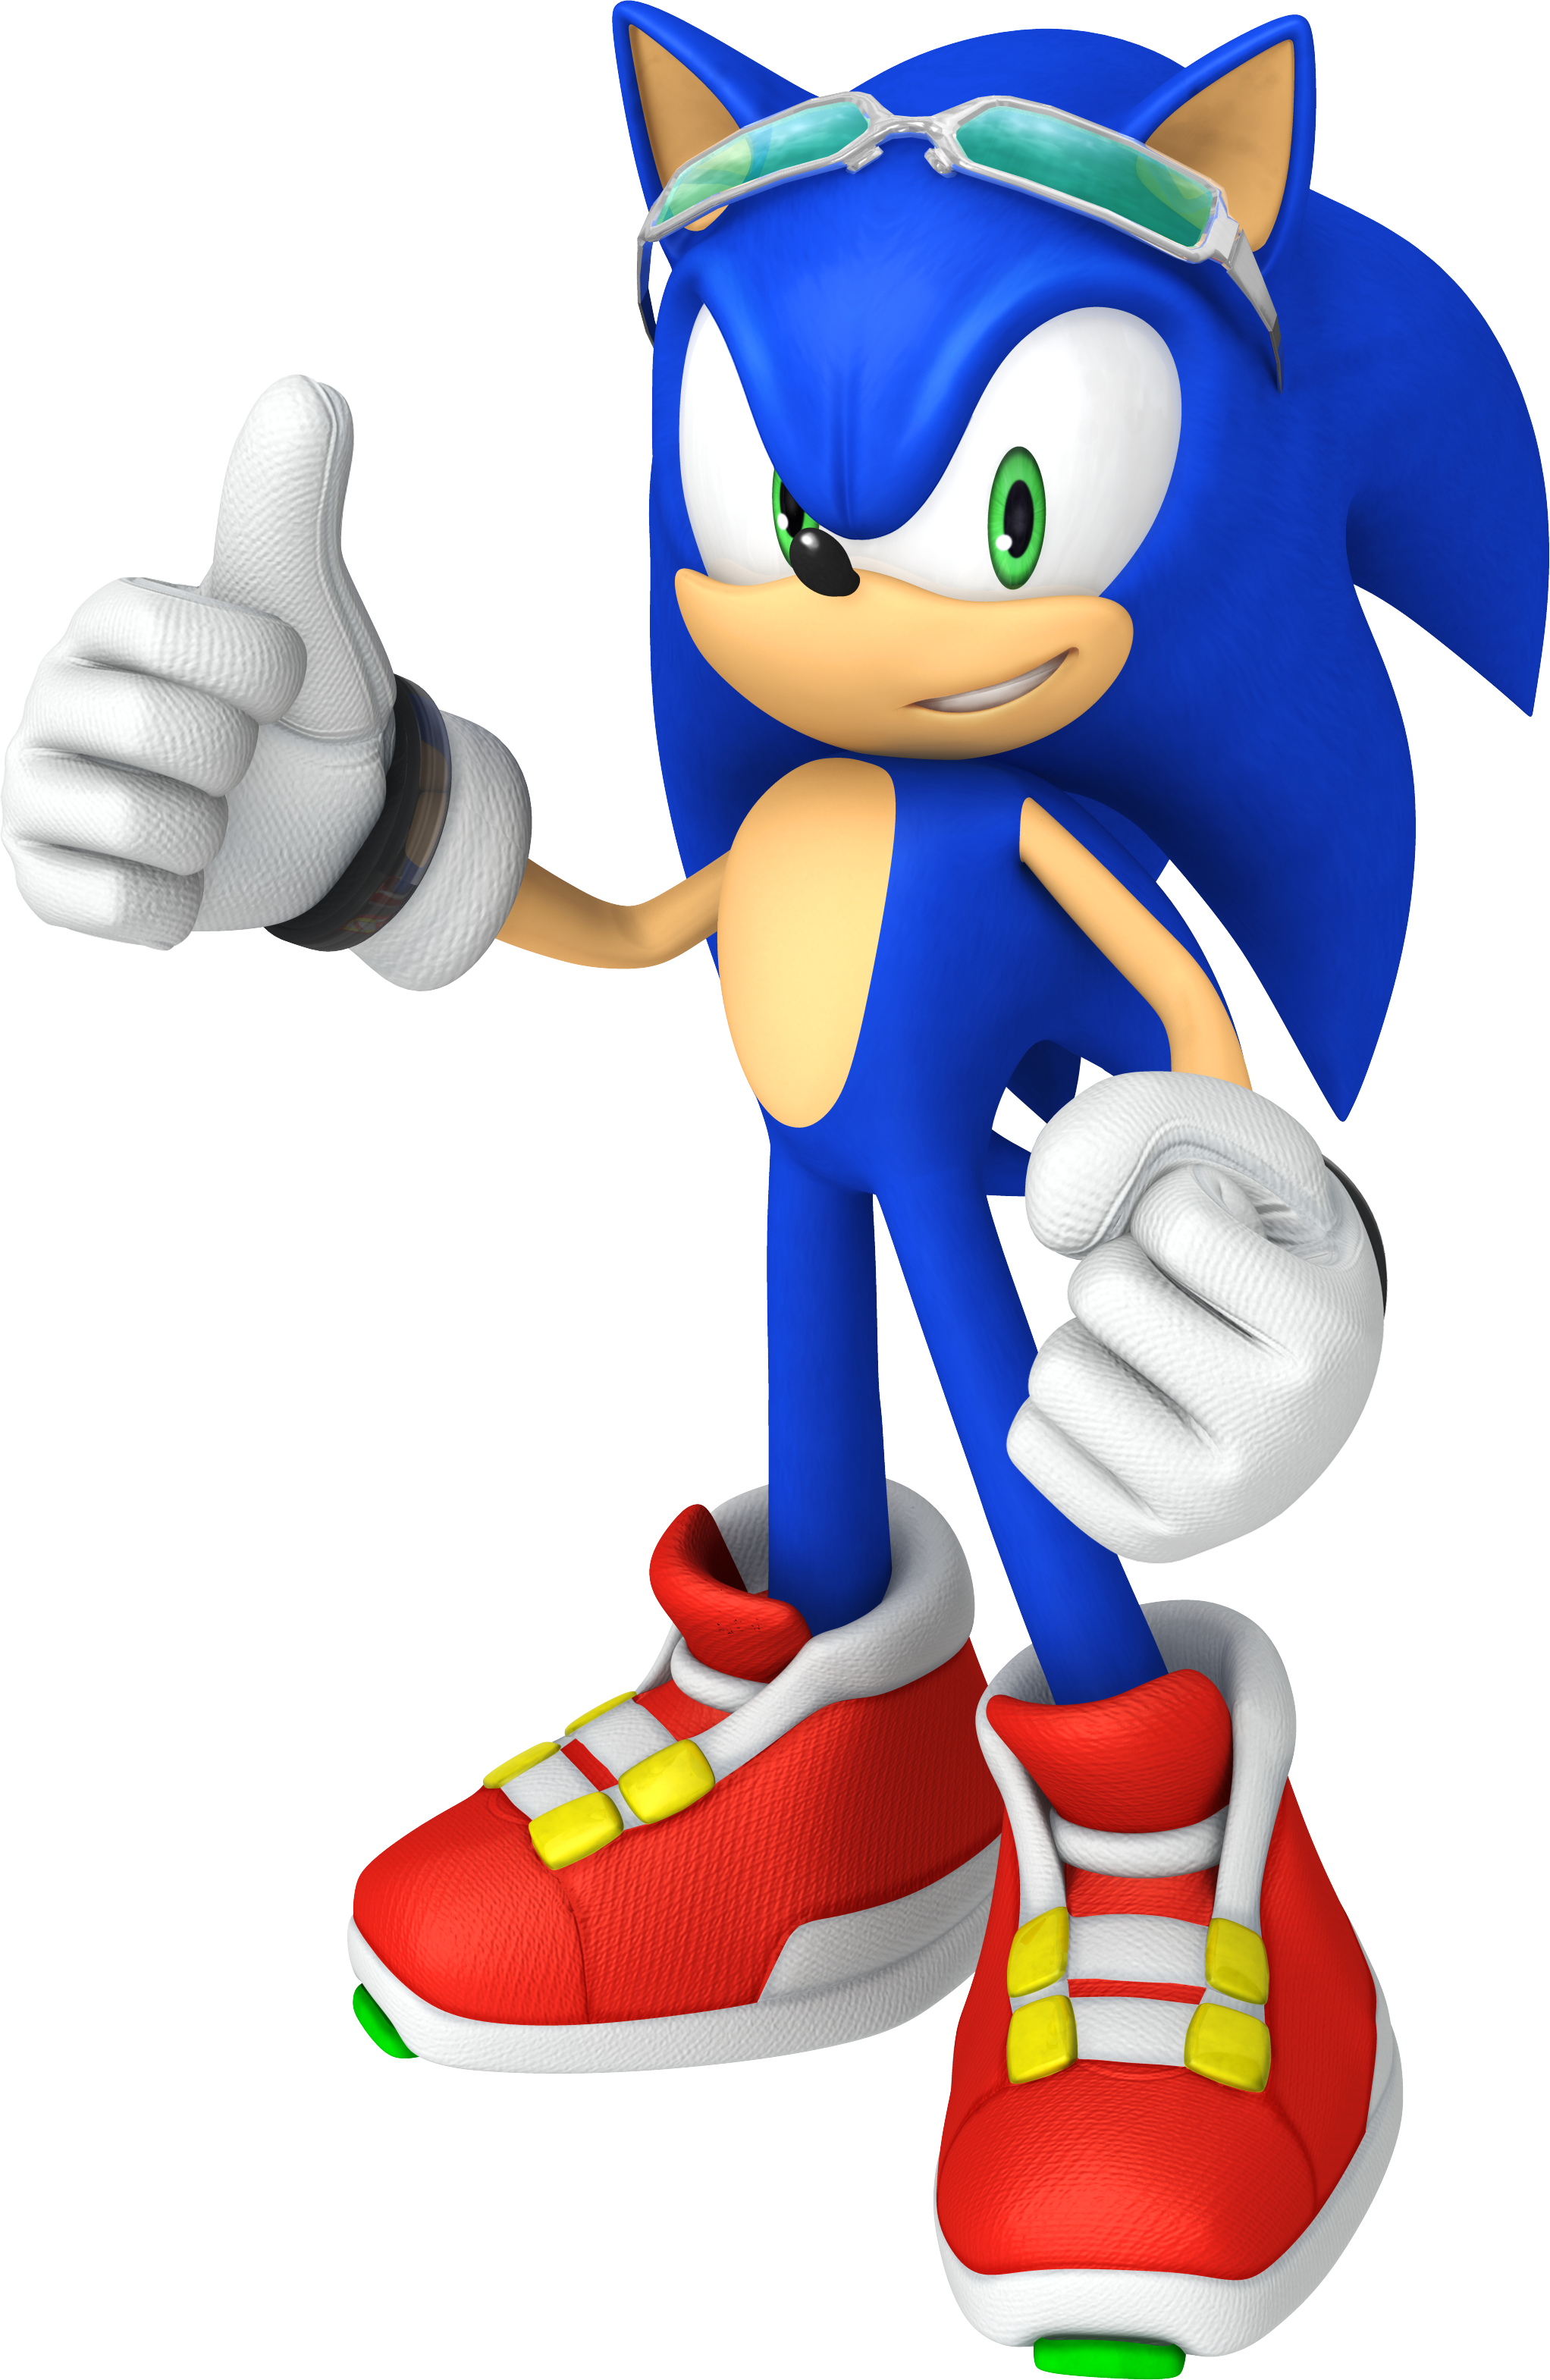 3D Sonic the Hedgehog 'Free Rider' thumbs up.. SONiC